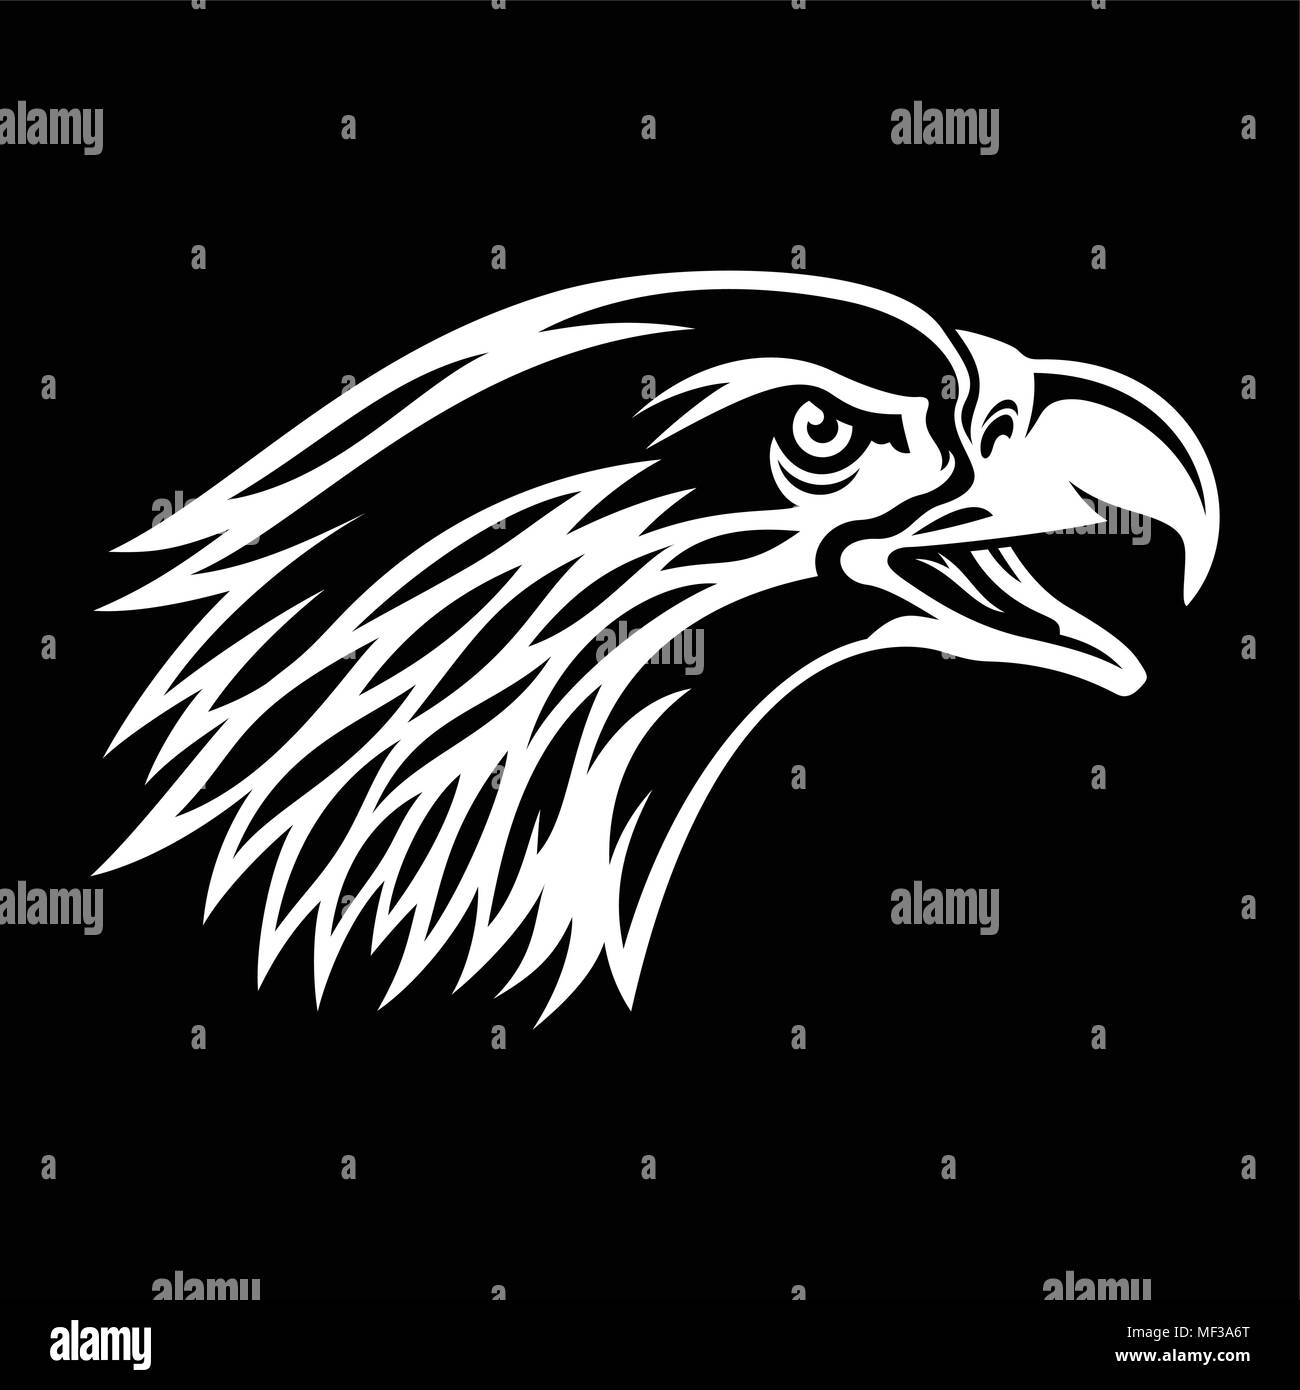 Bald Eagle silhouette isolated on black. This vector illustration can be used as a print on T-shirts, tattoo element or other uses - Stock Image